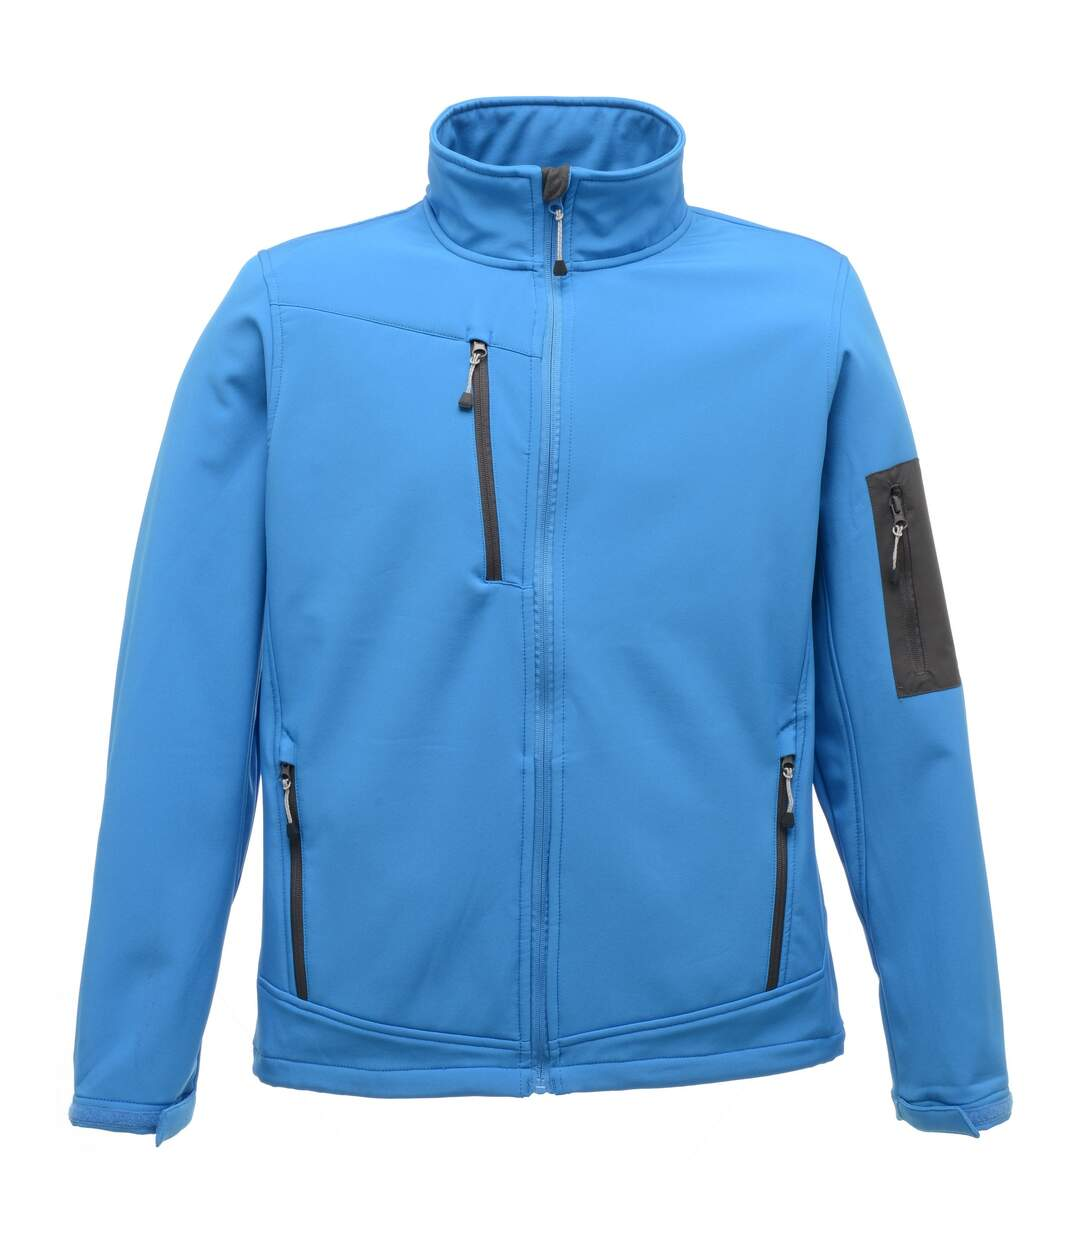 Regatta Standout Mens Arcola 3 Layer Waterproof And Breathable Softshell Jacket (French Blue/Seal Grey) - UTRG1461